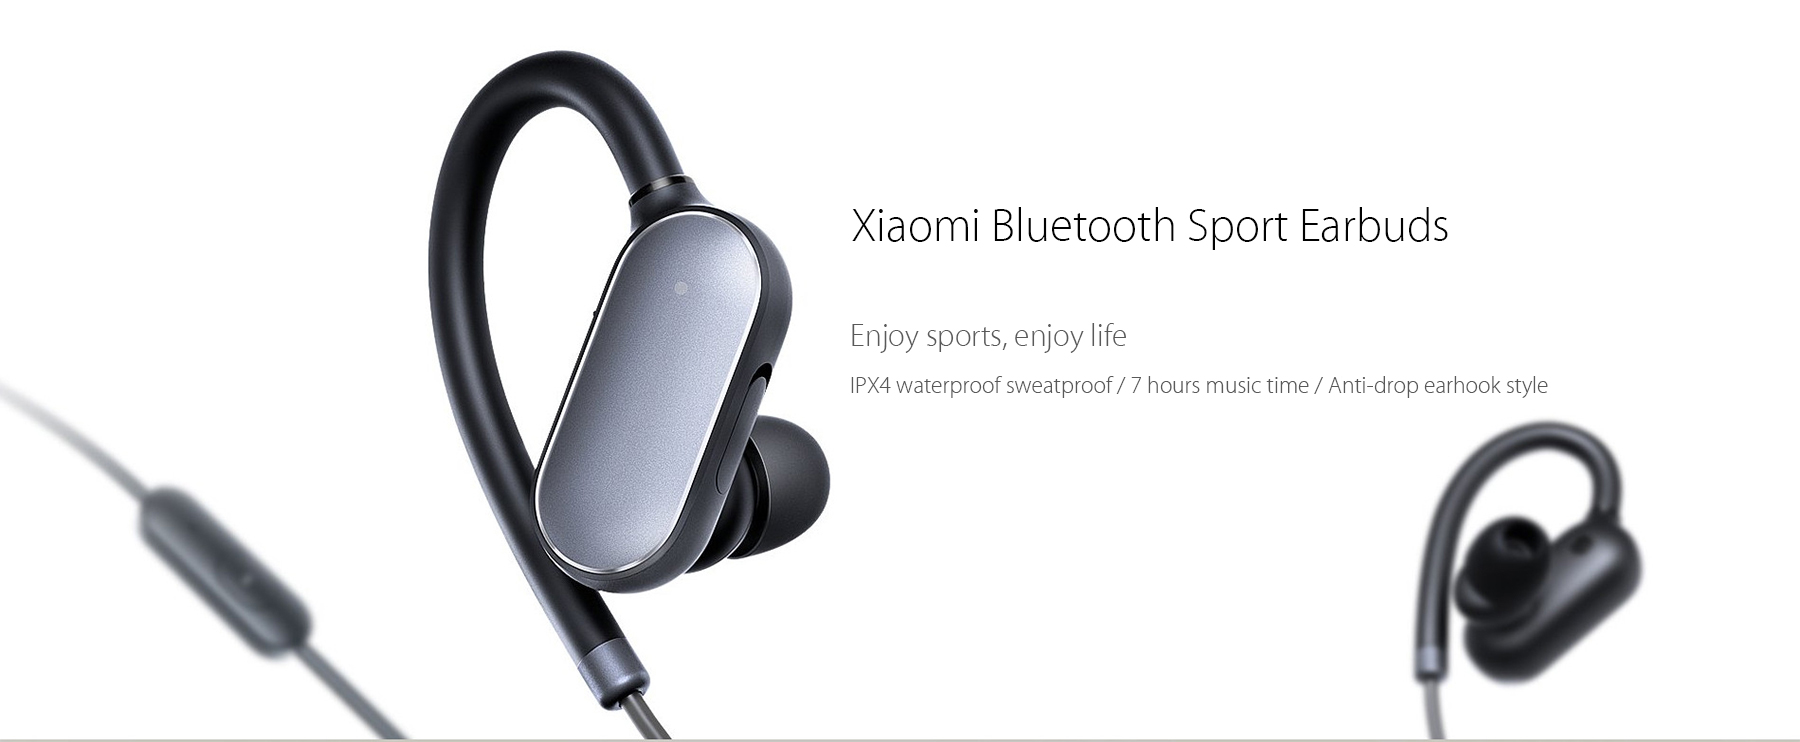 Xiaomi YDLYEJ01LM Bluetooth 4.1 Music Sport Earbuds Support Hands-free Calls Volume Control Song Switch- Black